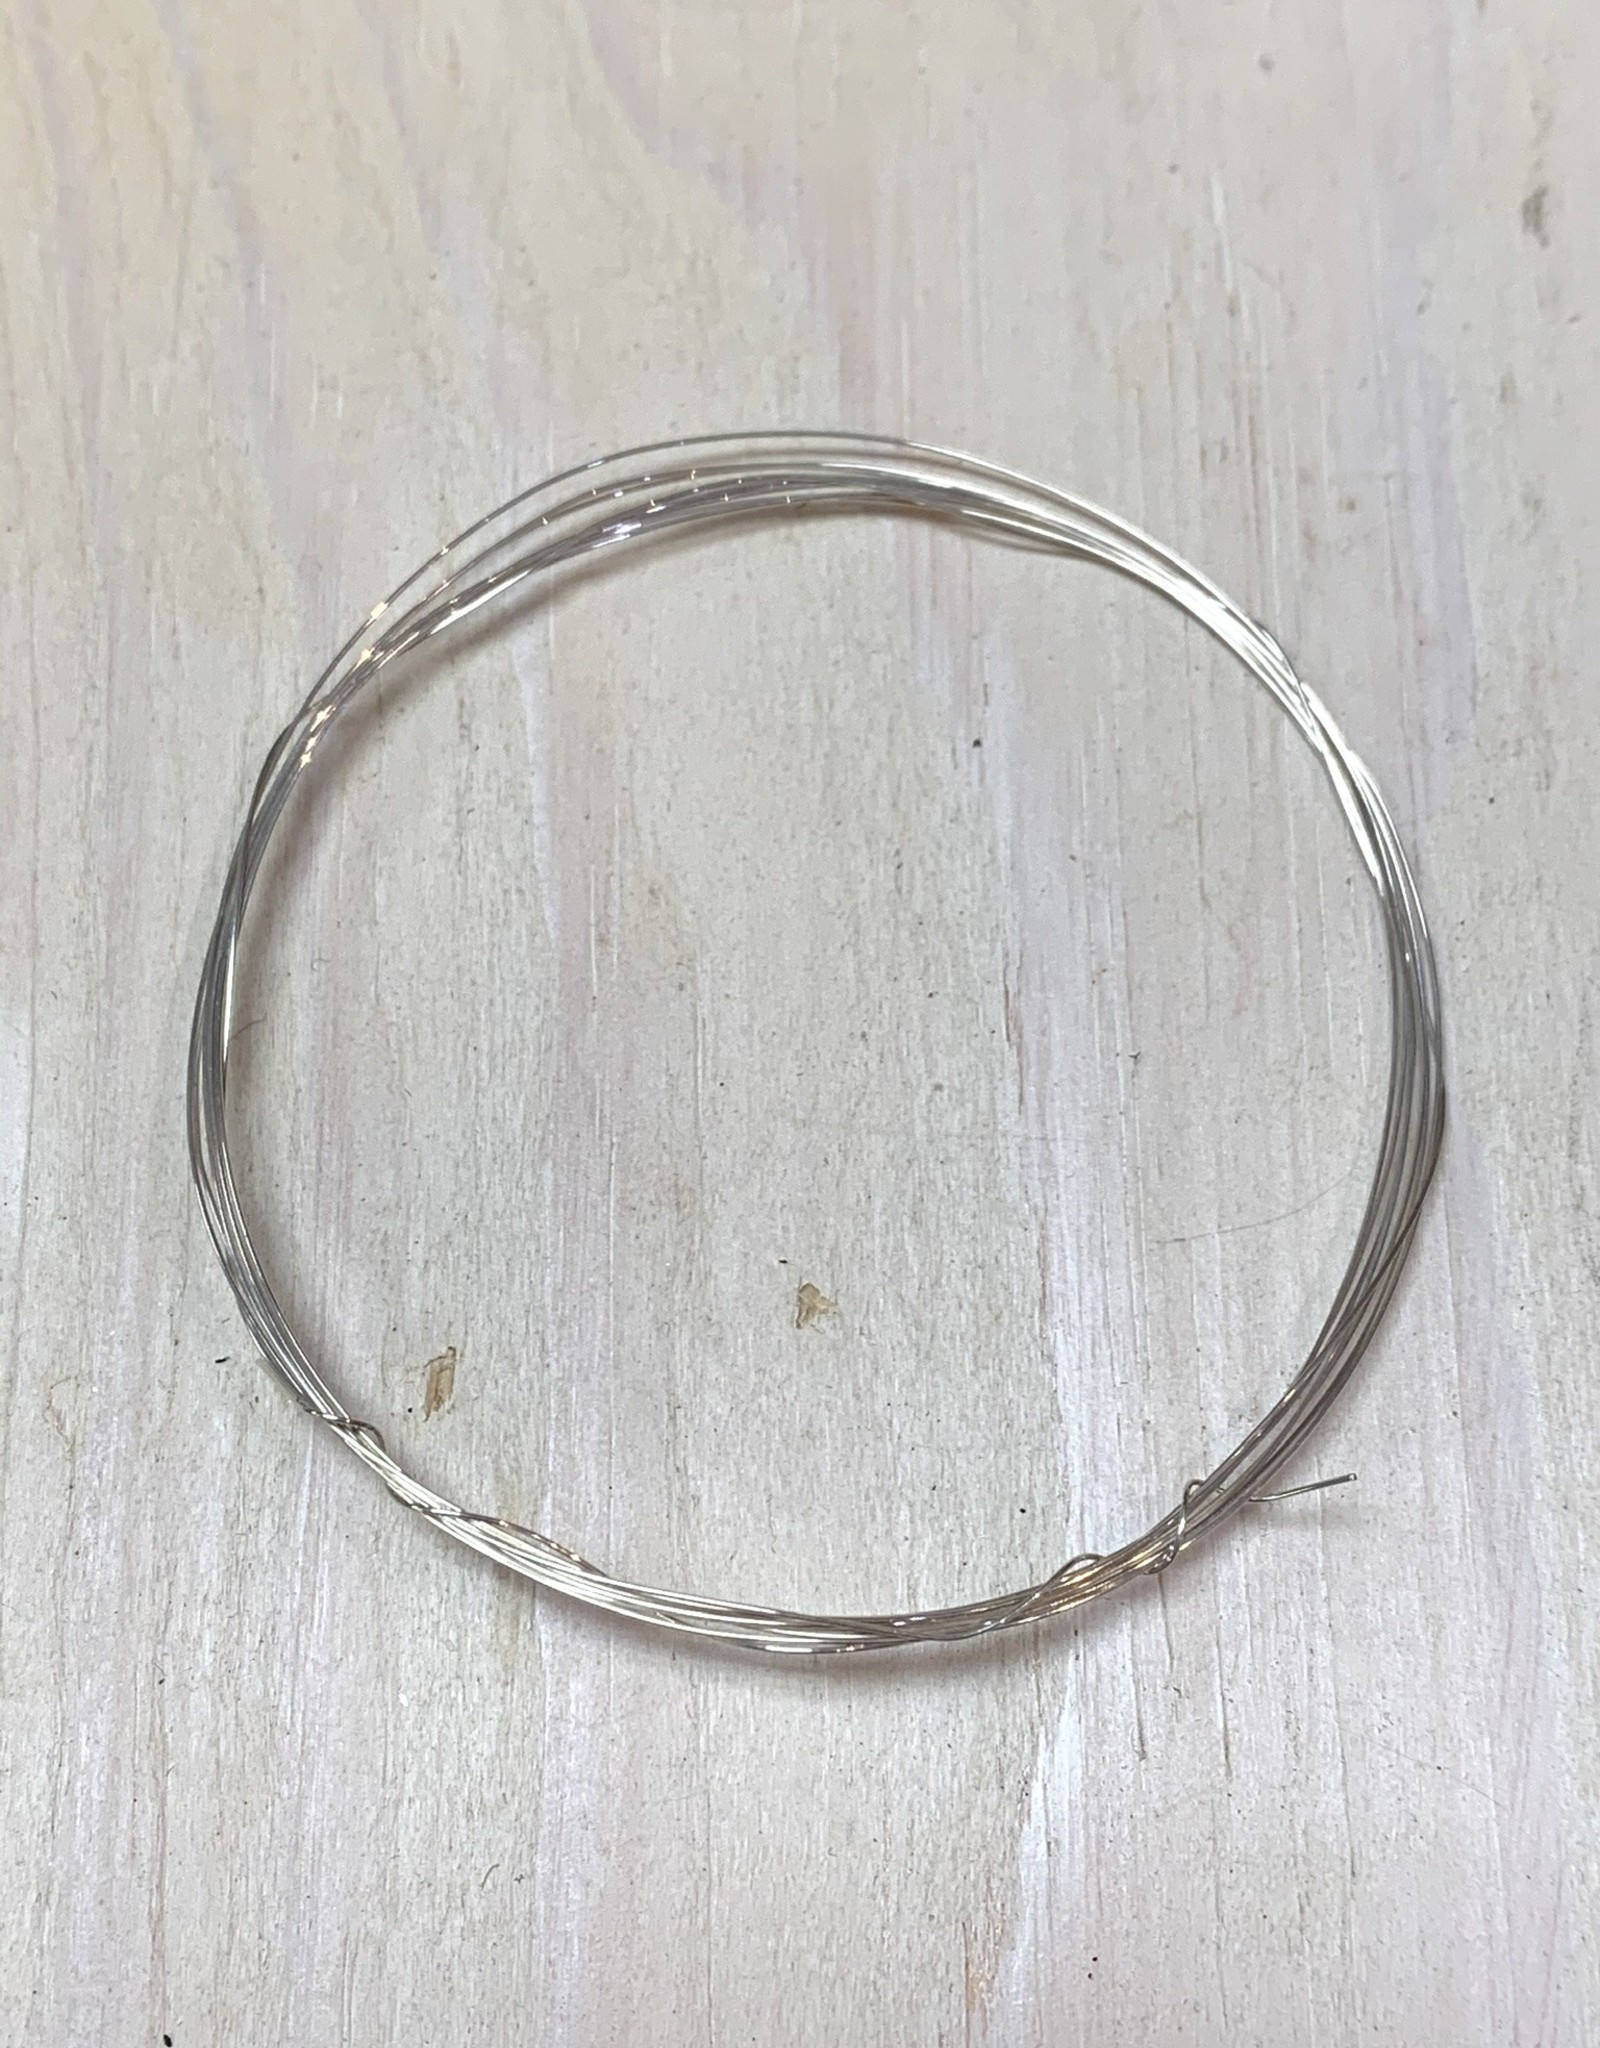 28ga Round Wire Sterling Silver 5ft